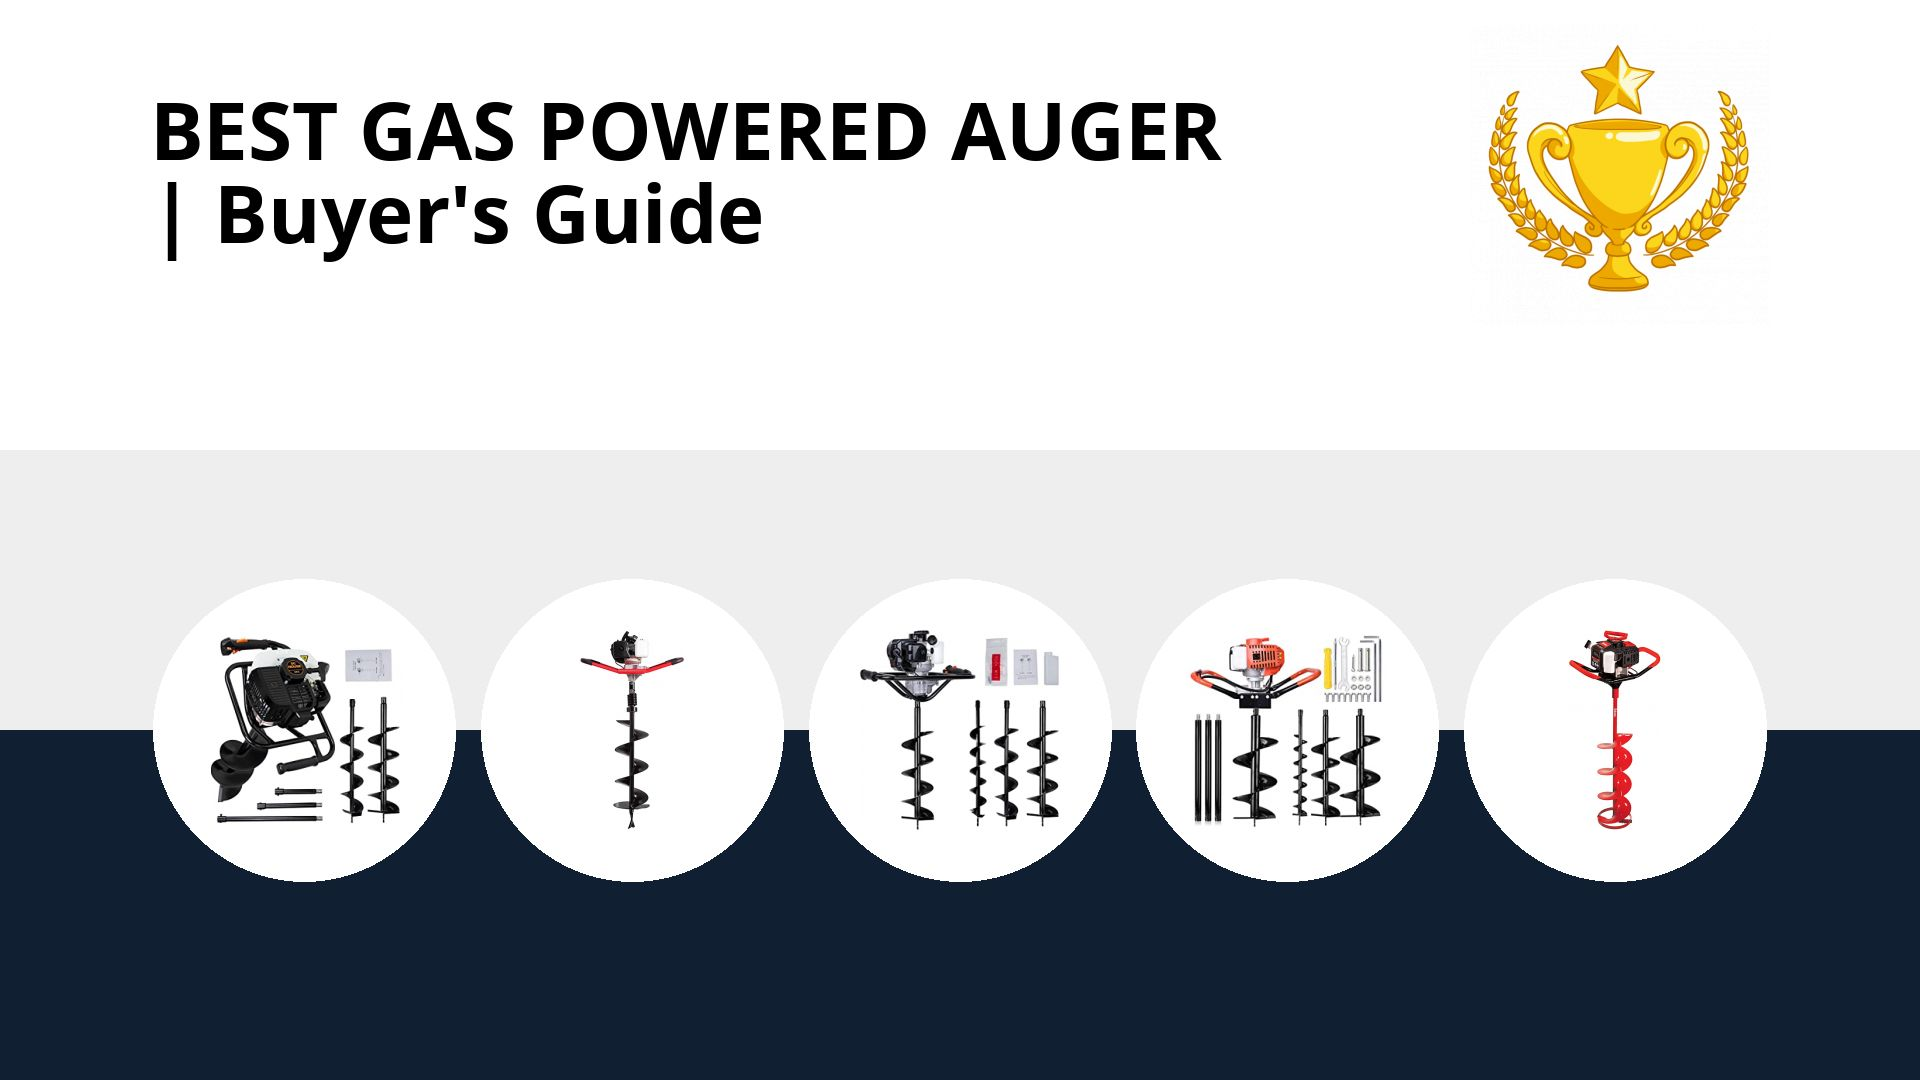 Best Gas Powered Auger: image